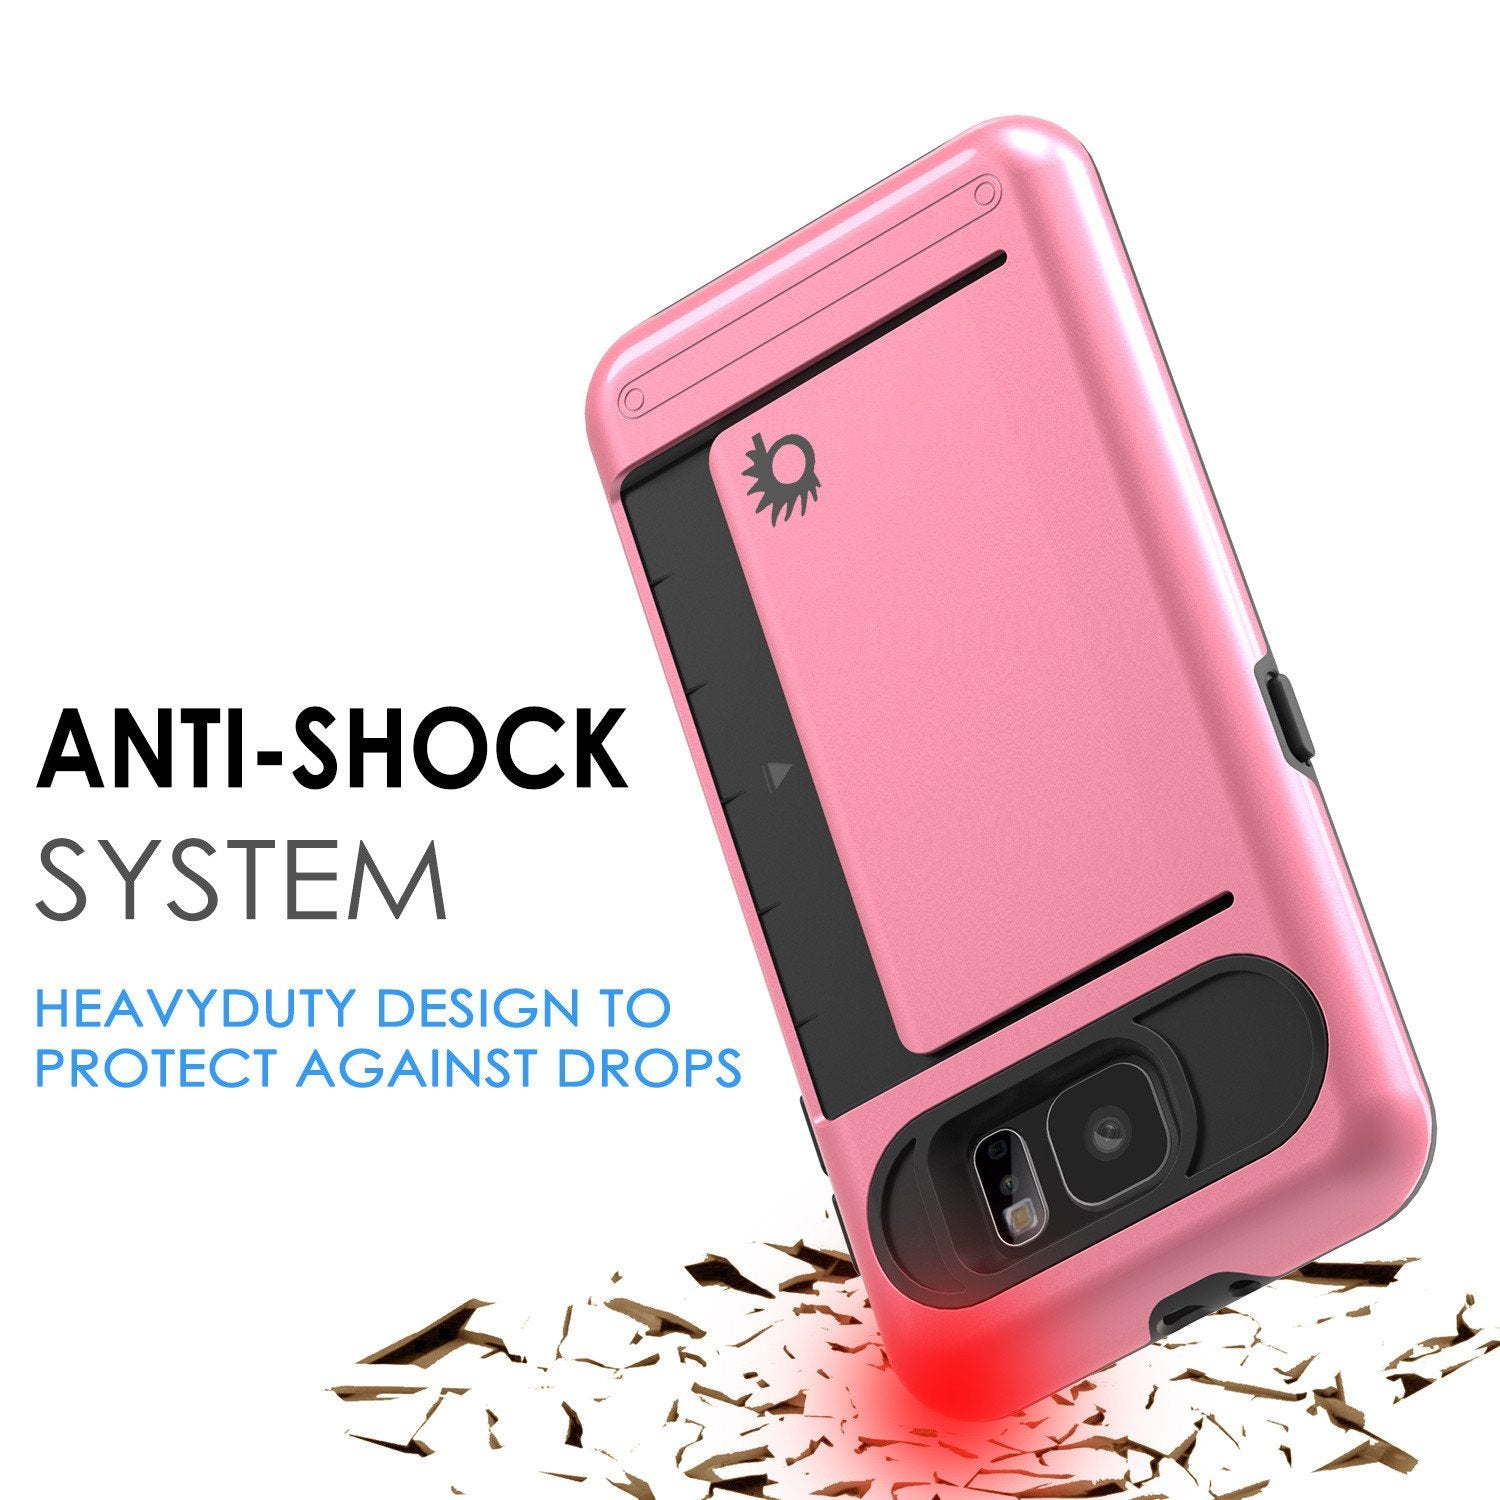 Galaxy S6 EDGE Case PunkCase CLUTCH Pink Series Slim Armor Soft Cover Case w/ Screen Protector